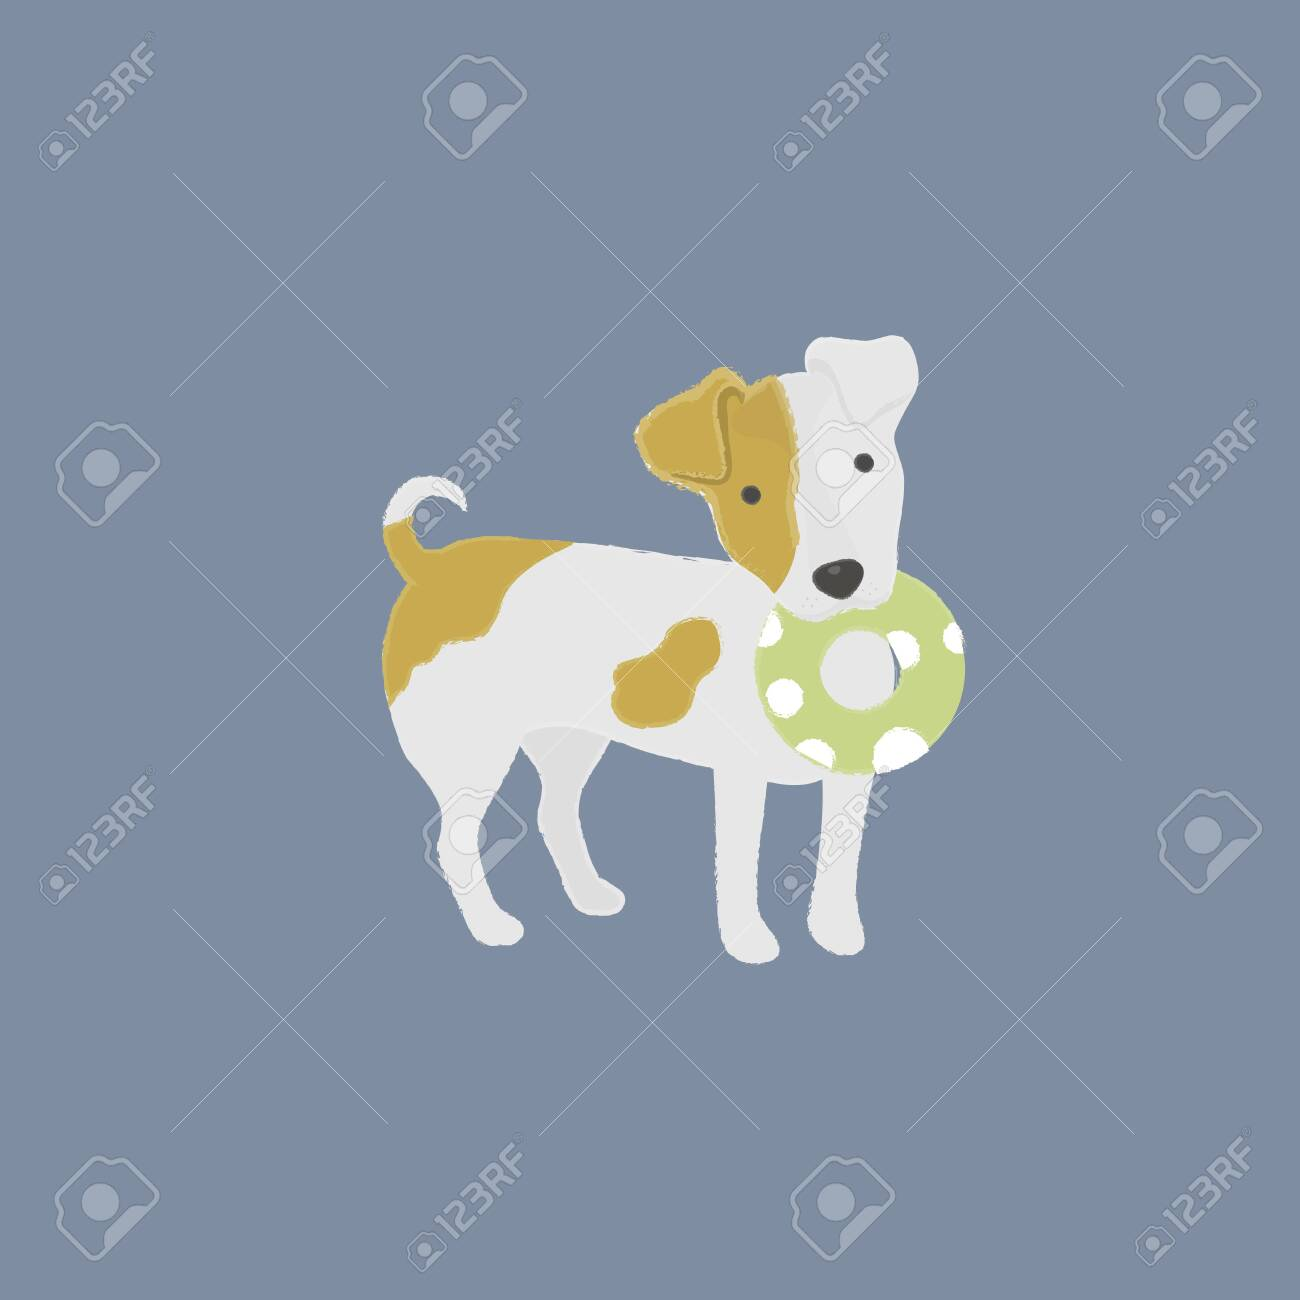 Dog with a pet toy - 115735094